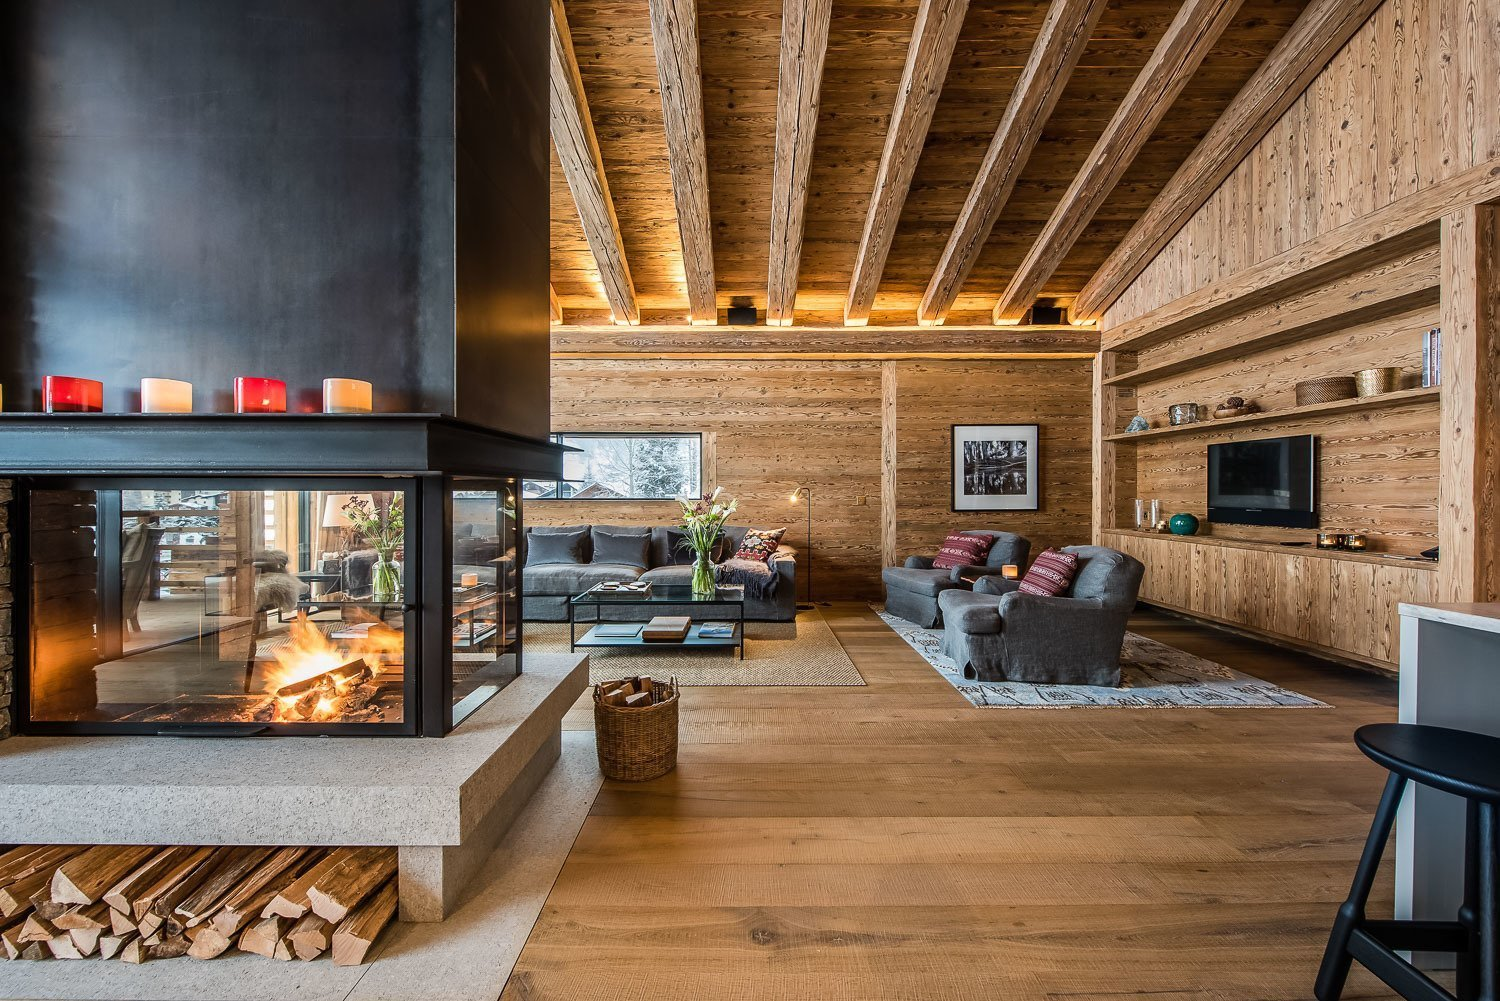 Photo 4 of 10 in 10 Modern Fireplaces That Make For